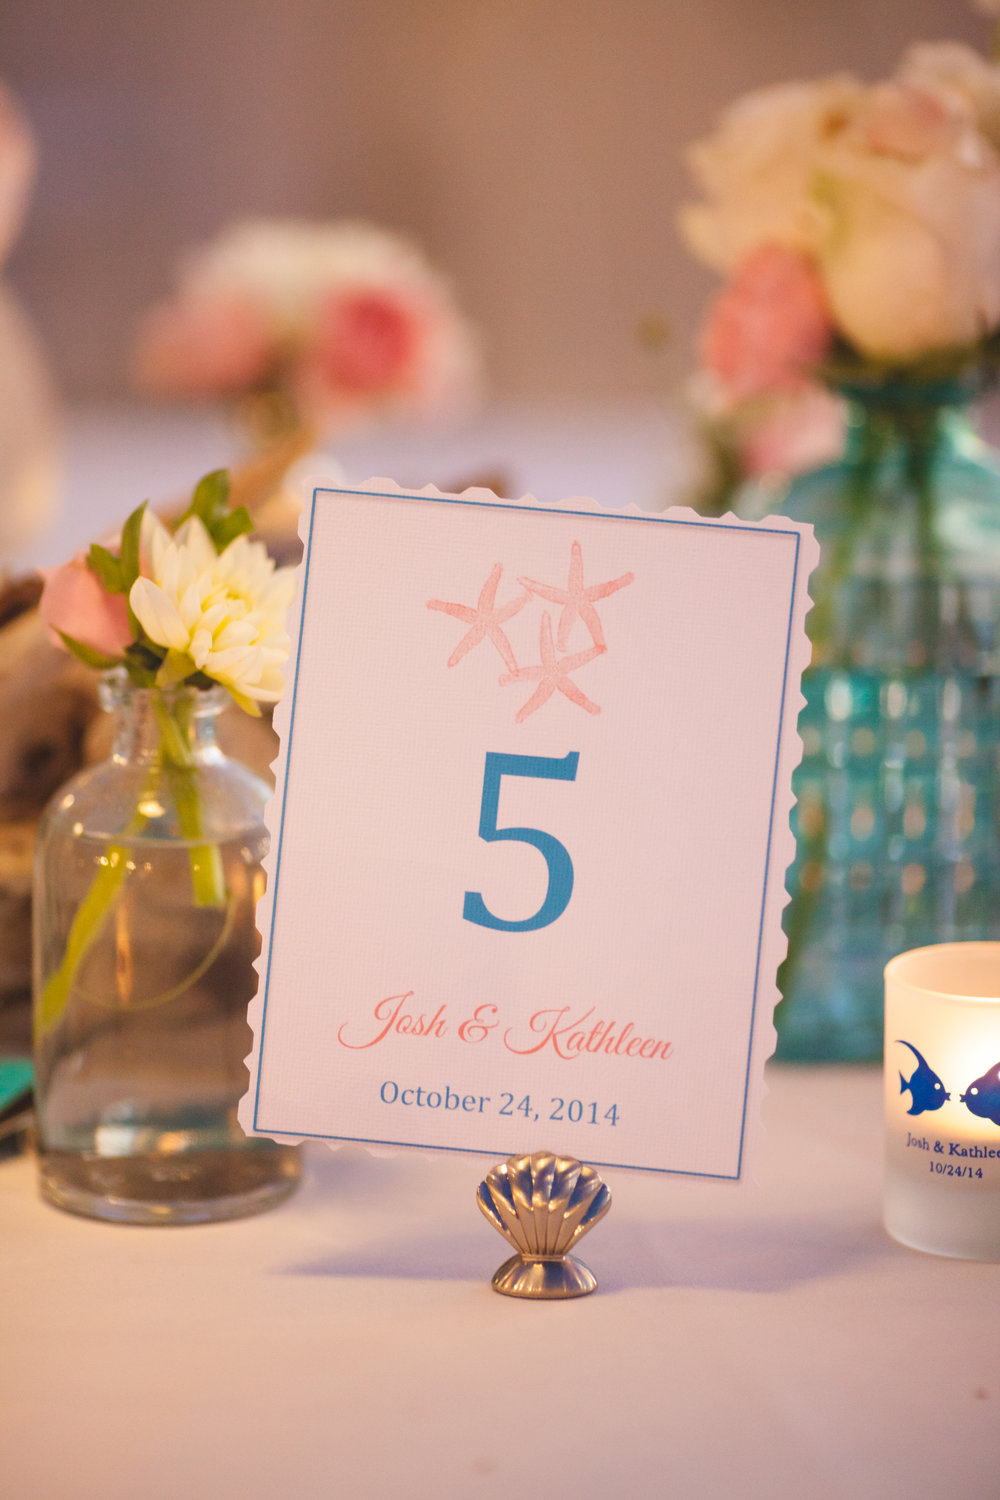 Table number and table settings for a beach destination wedding